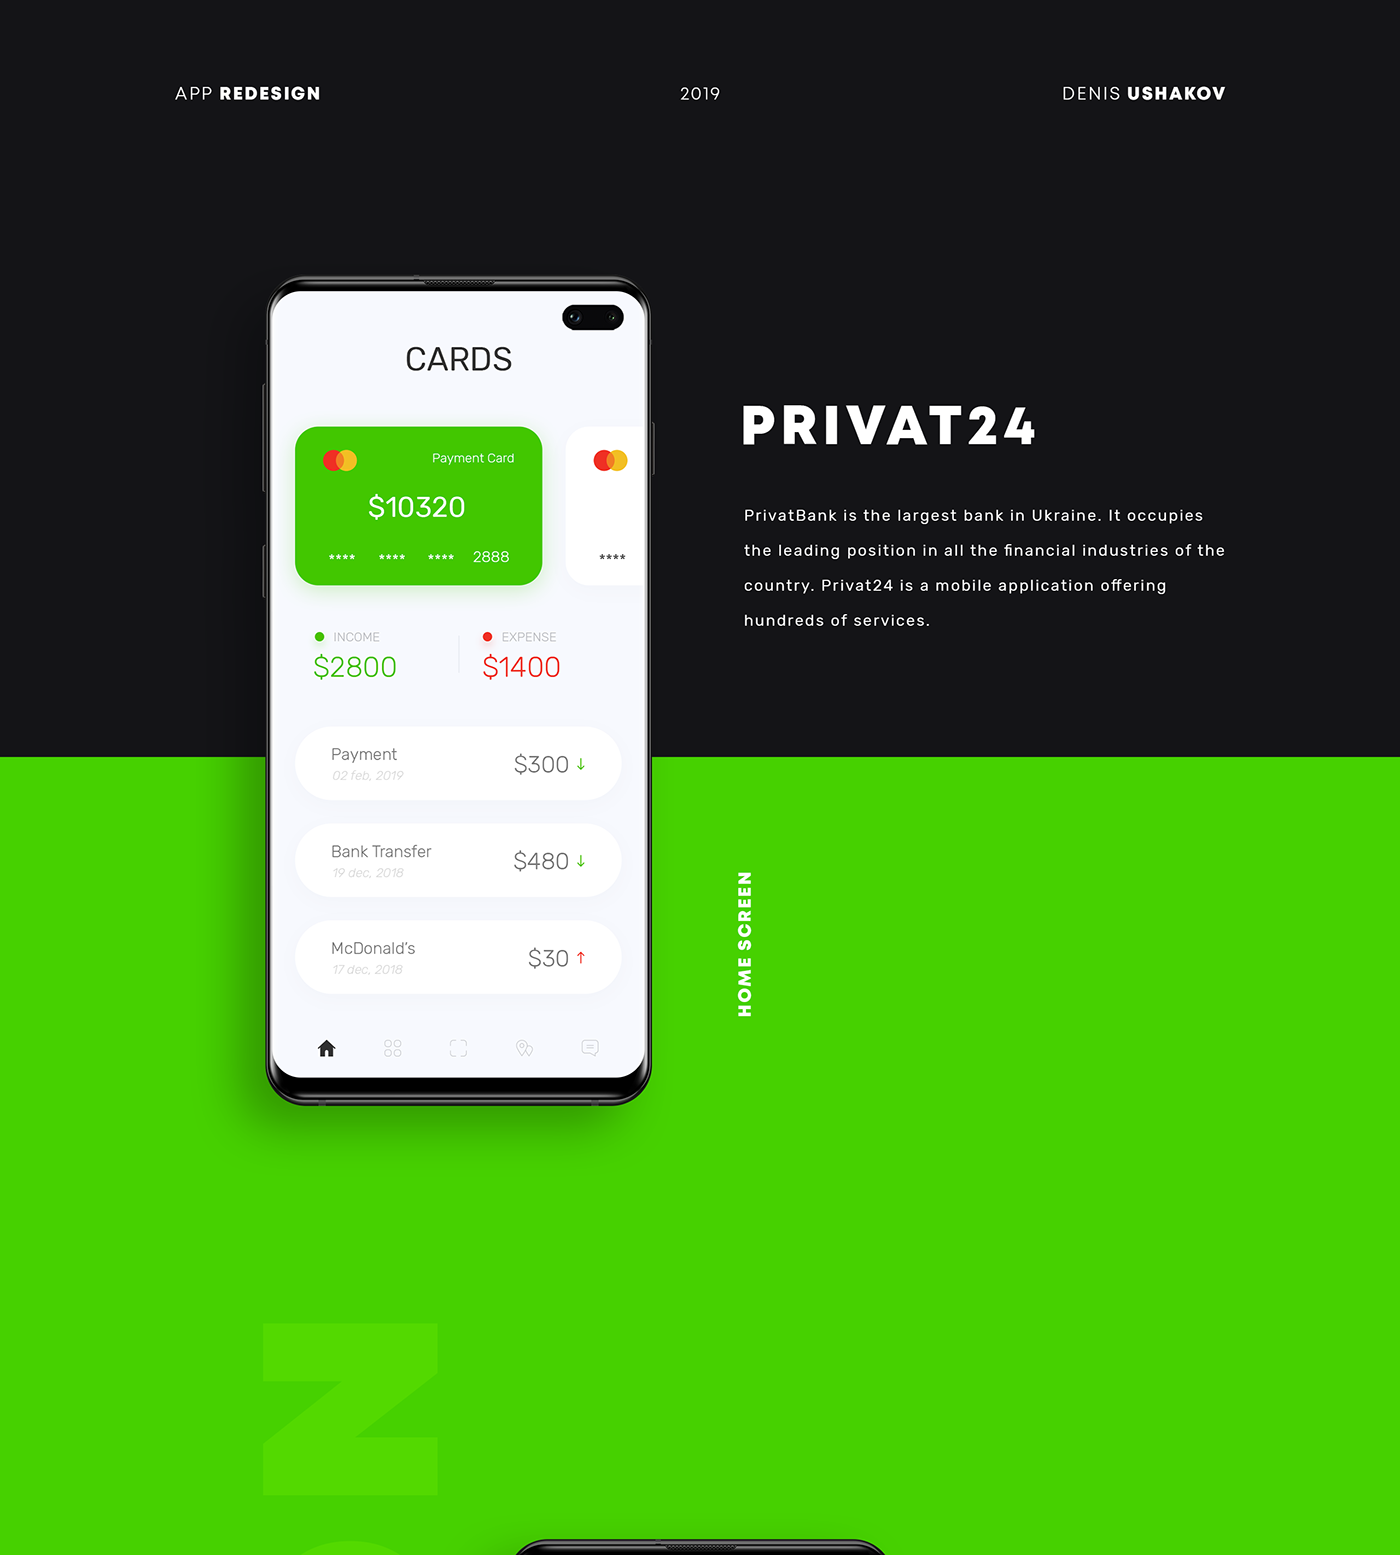 Privat24 - Banking App Redesign on Behance